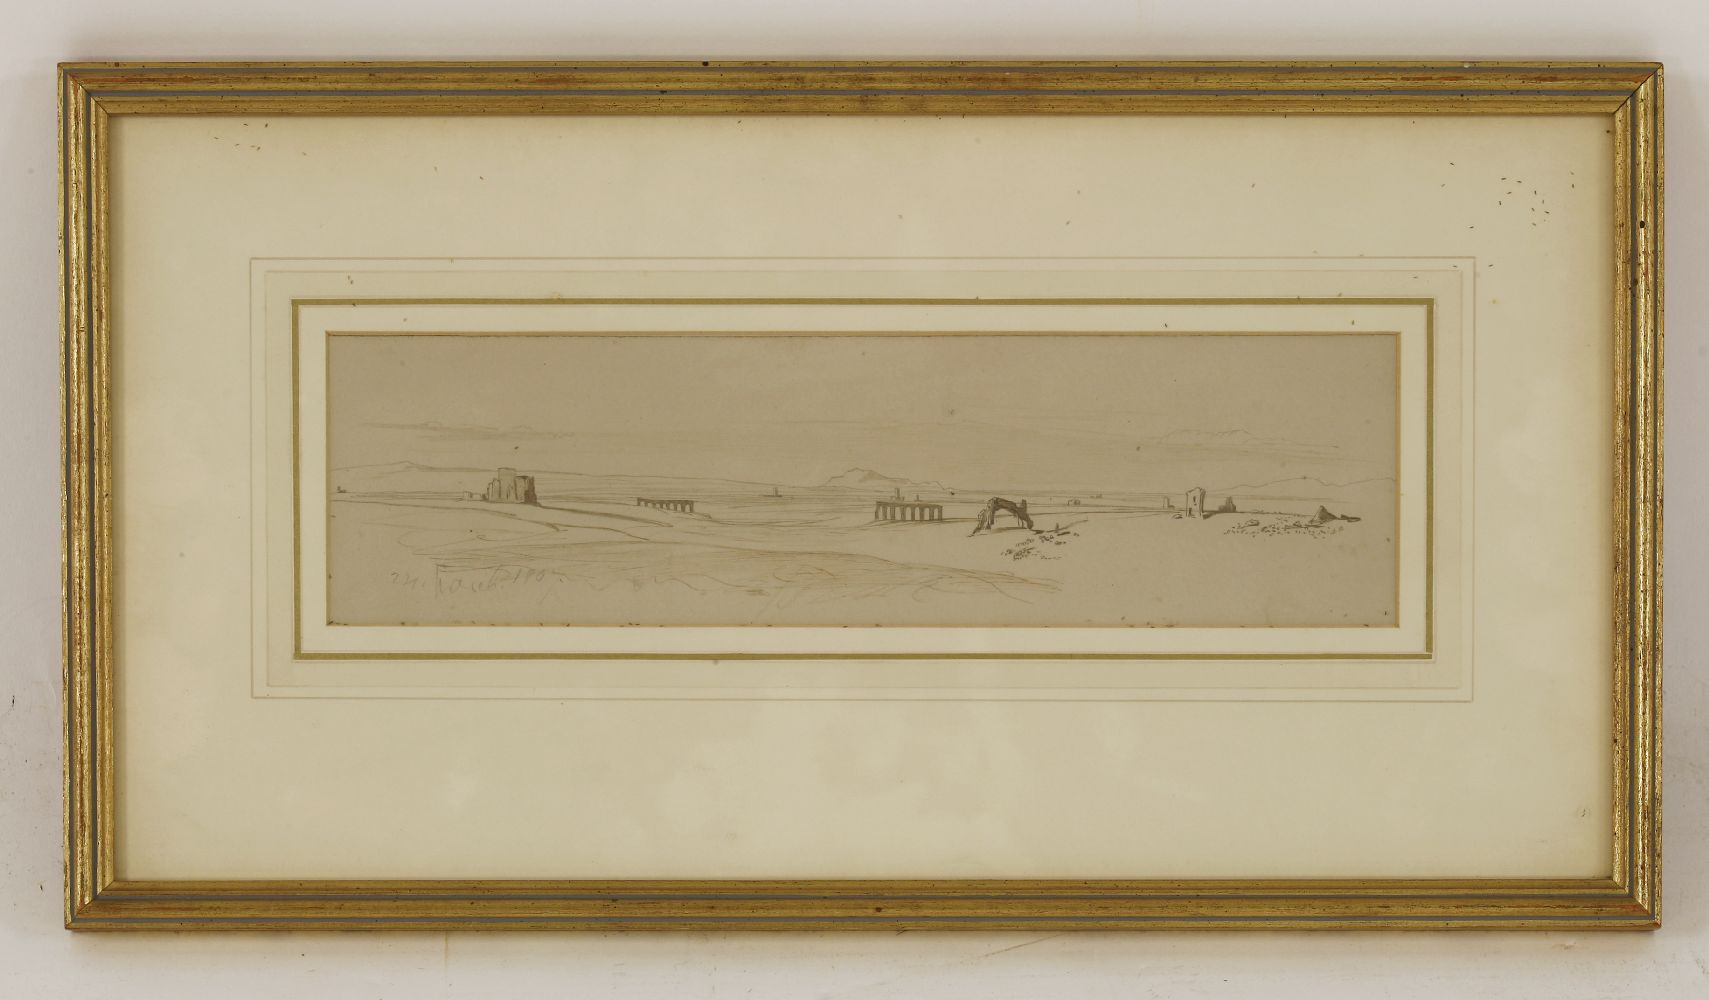 Lot 540 - Edward Lear (1812-1888)A VIEW IN THE ROMAN CAMPAGNADated '24 March 1867' l.l., pencil and pen and